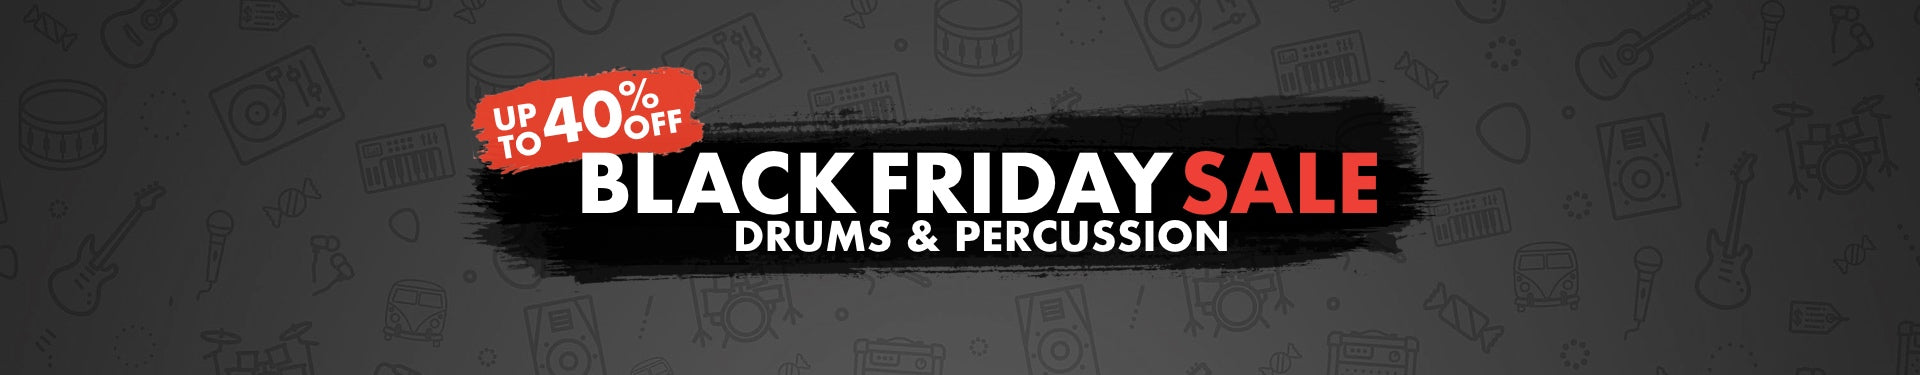 Black Friday Drums & Percussion